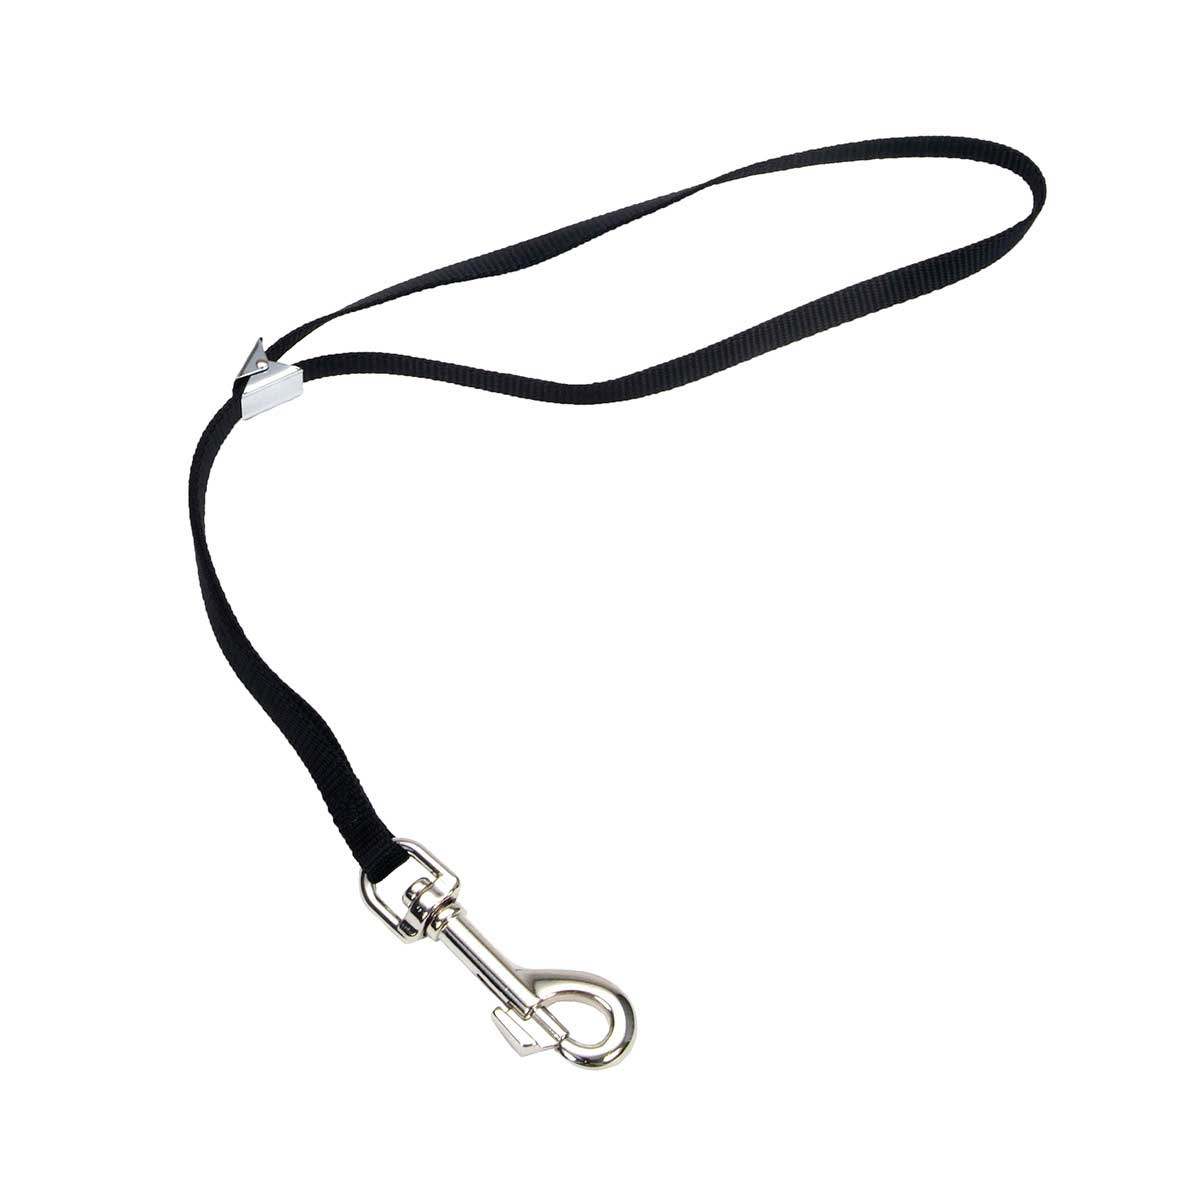 Coastal Nylon Grooming Loop Black 3/8 inch for Professional Groomers